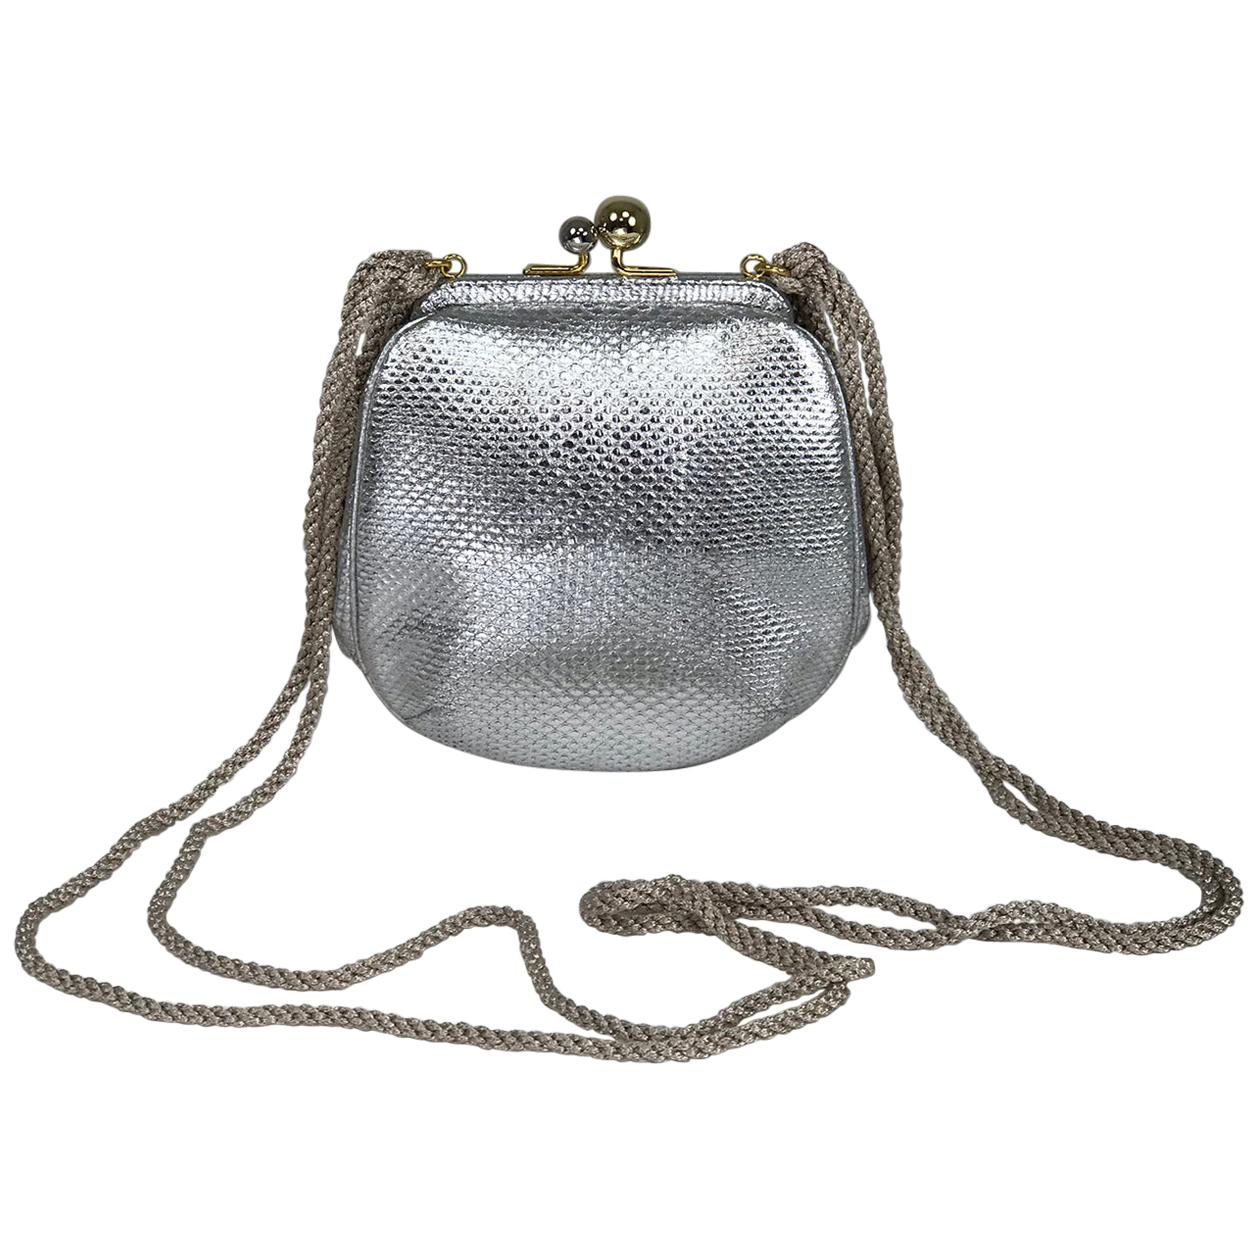 Judith Leiber Silver Karung Leather Gold Clasp Evening Bag